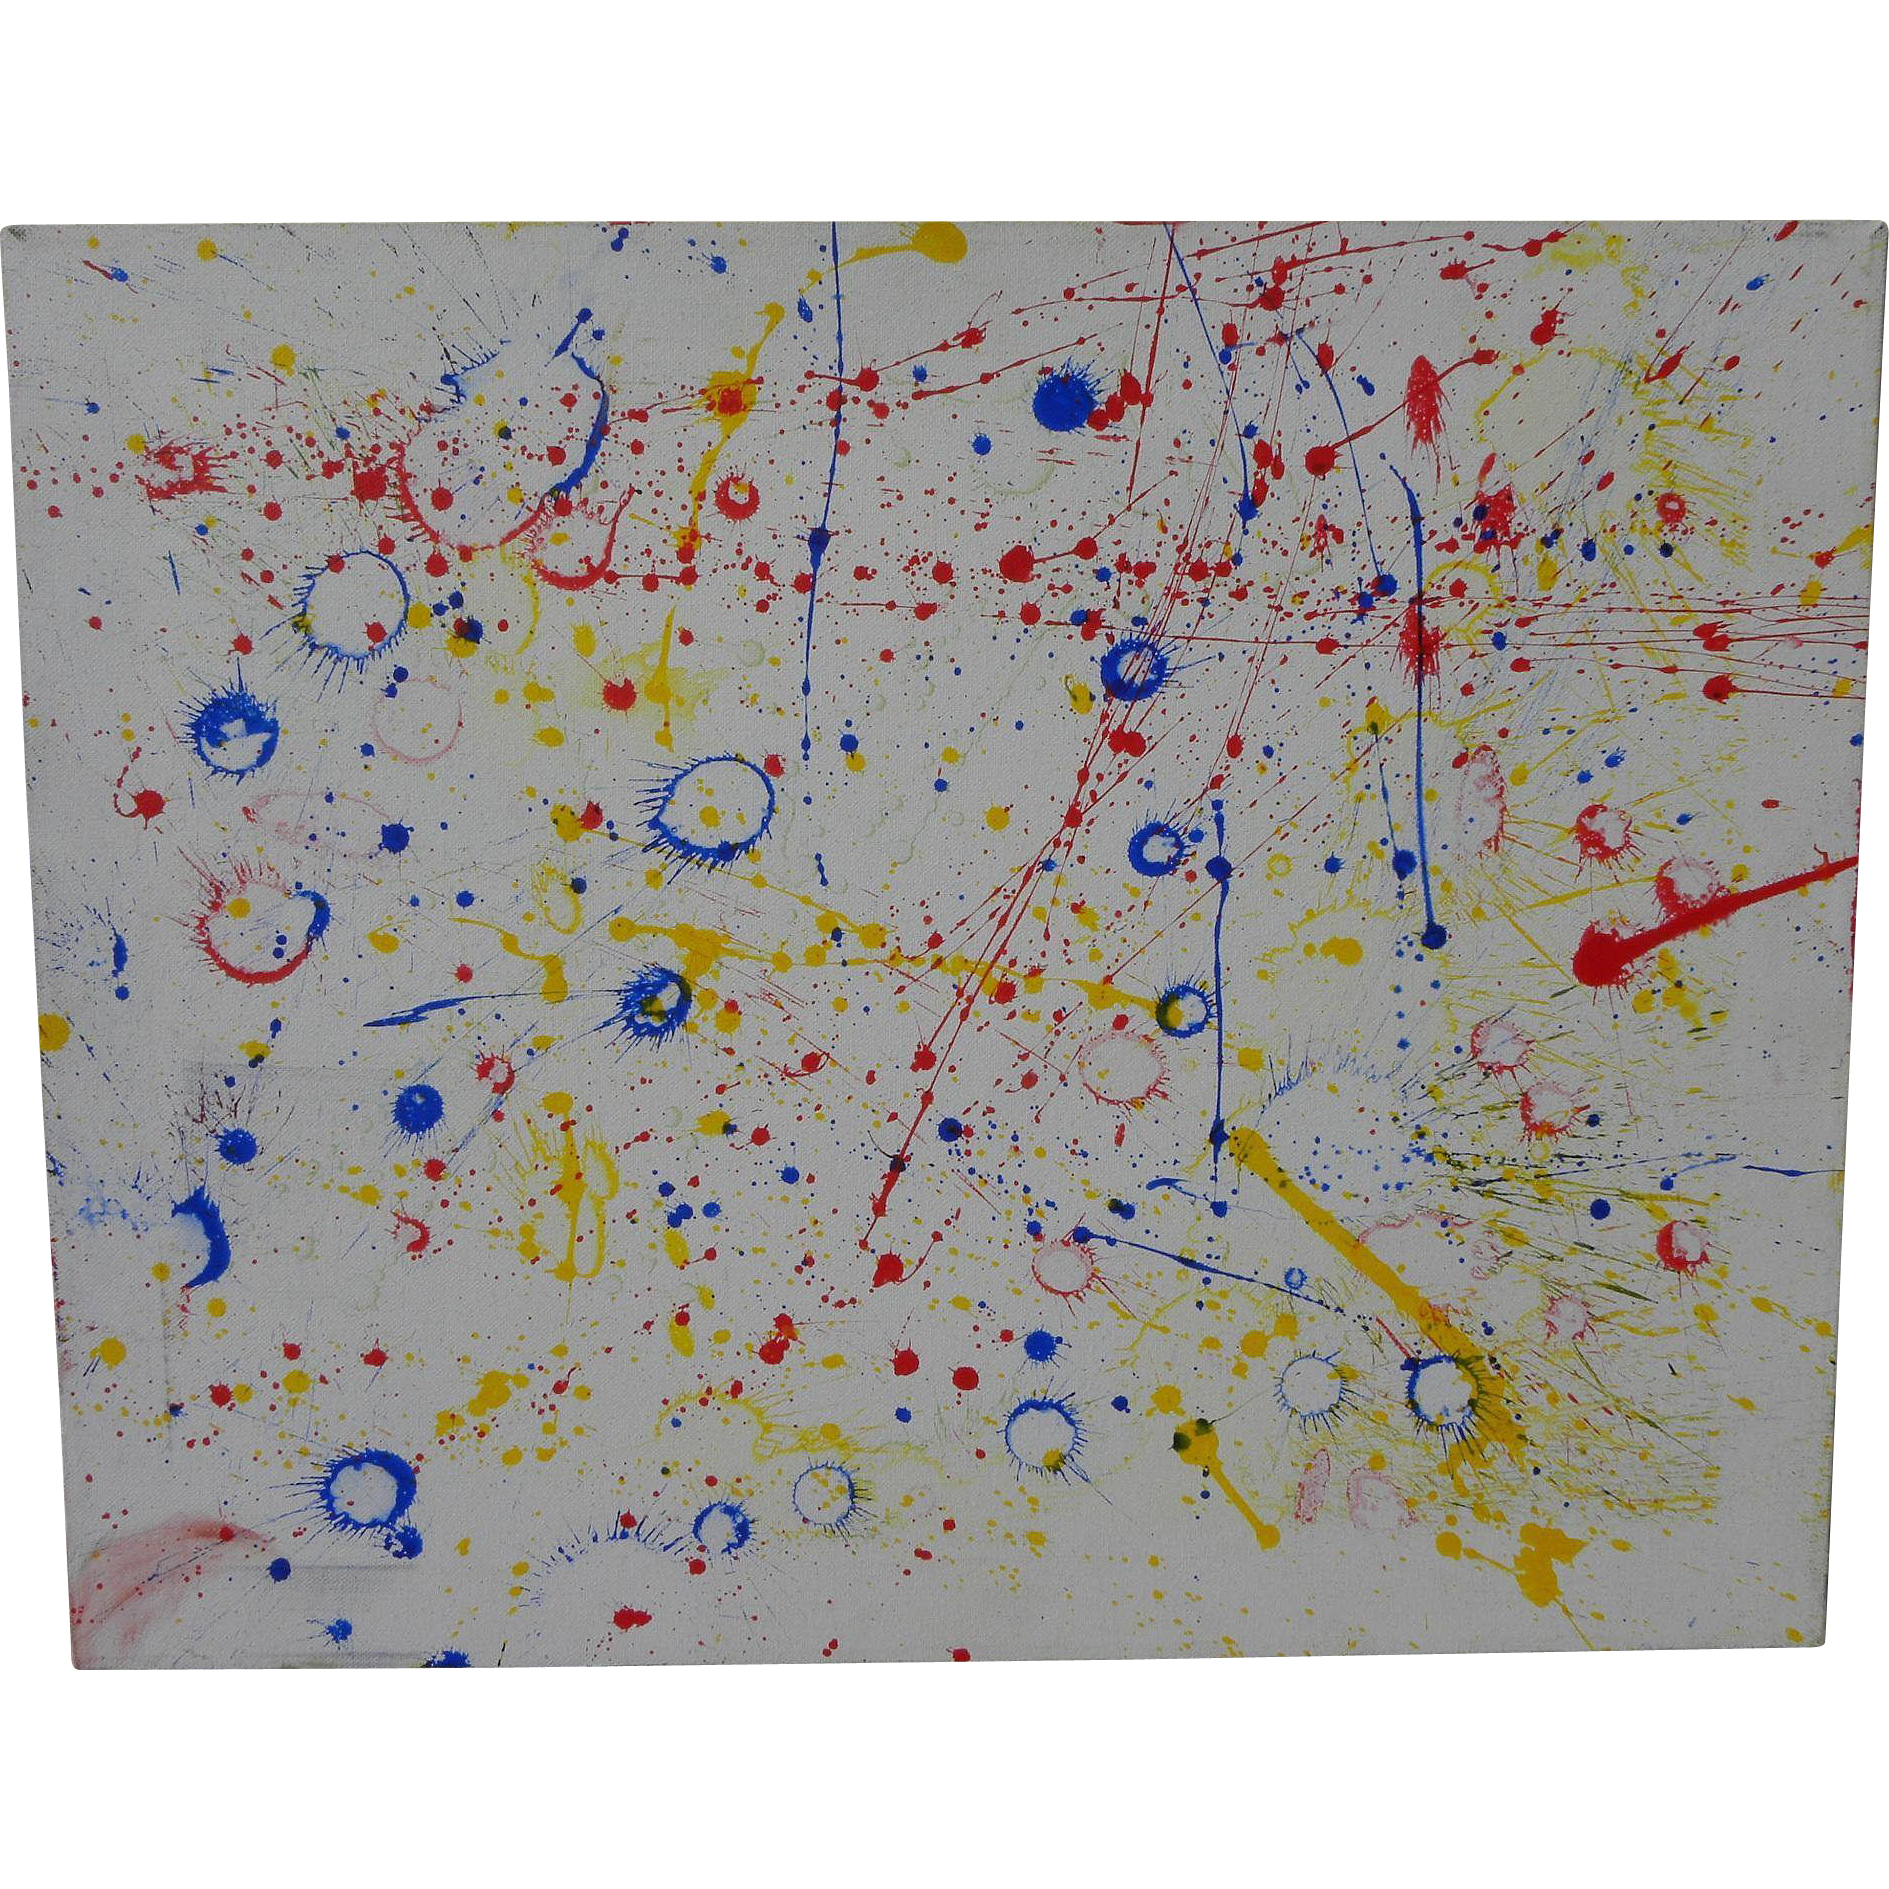 Contemporary abstract drip painting in style of Sam Francis